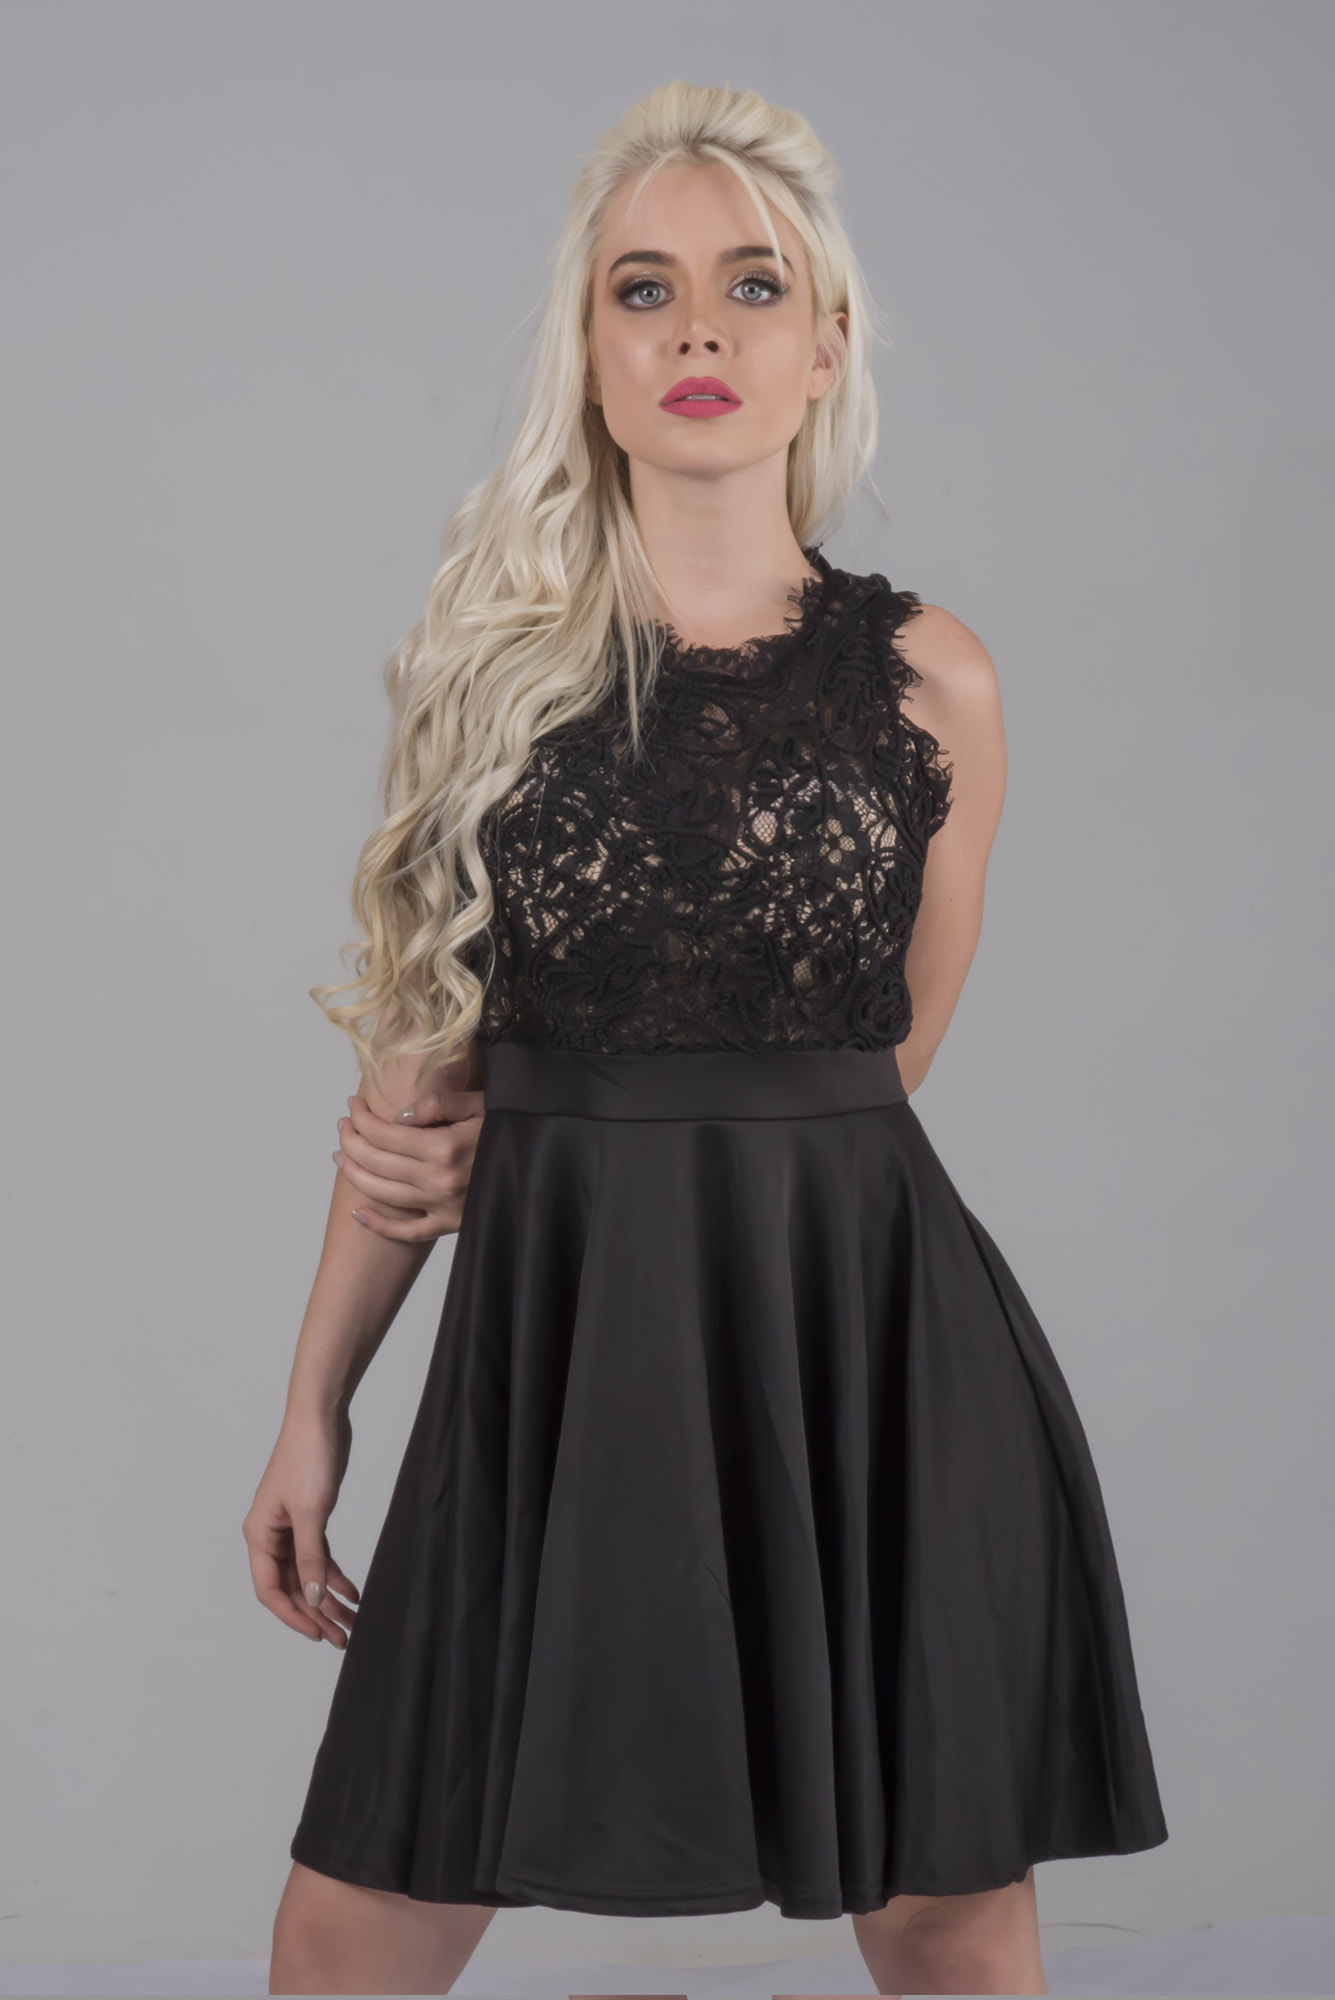 2019 year lifestyle- How to lace wear skater dress